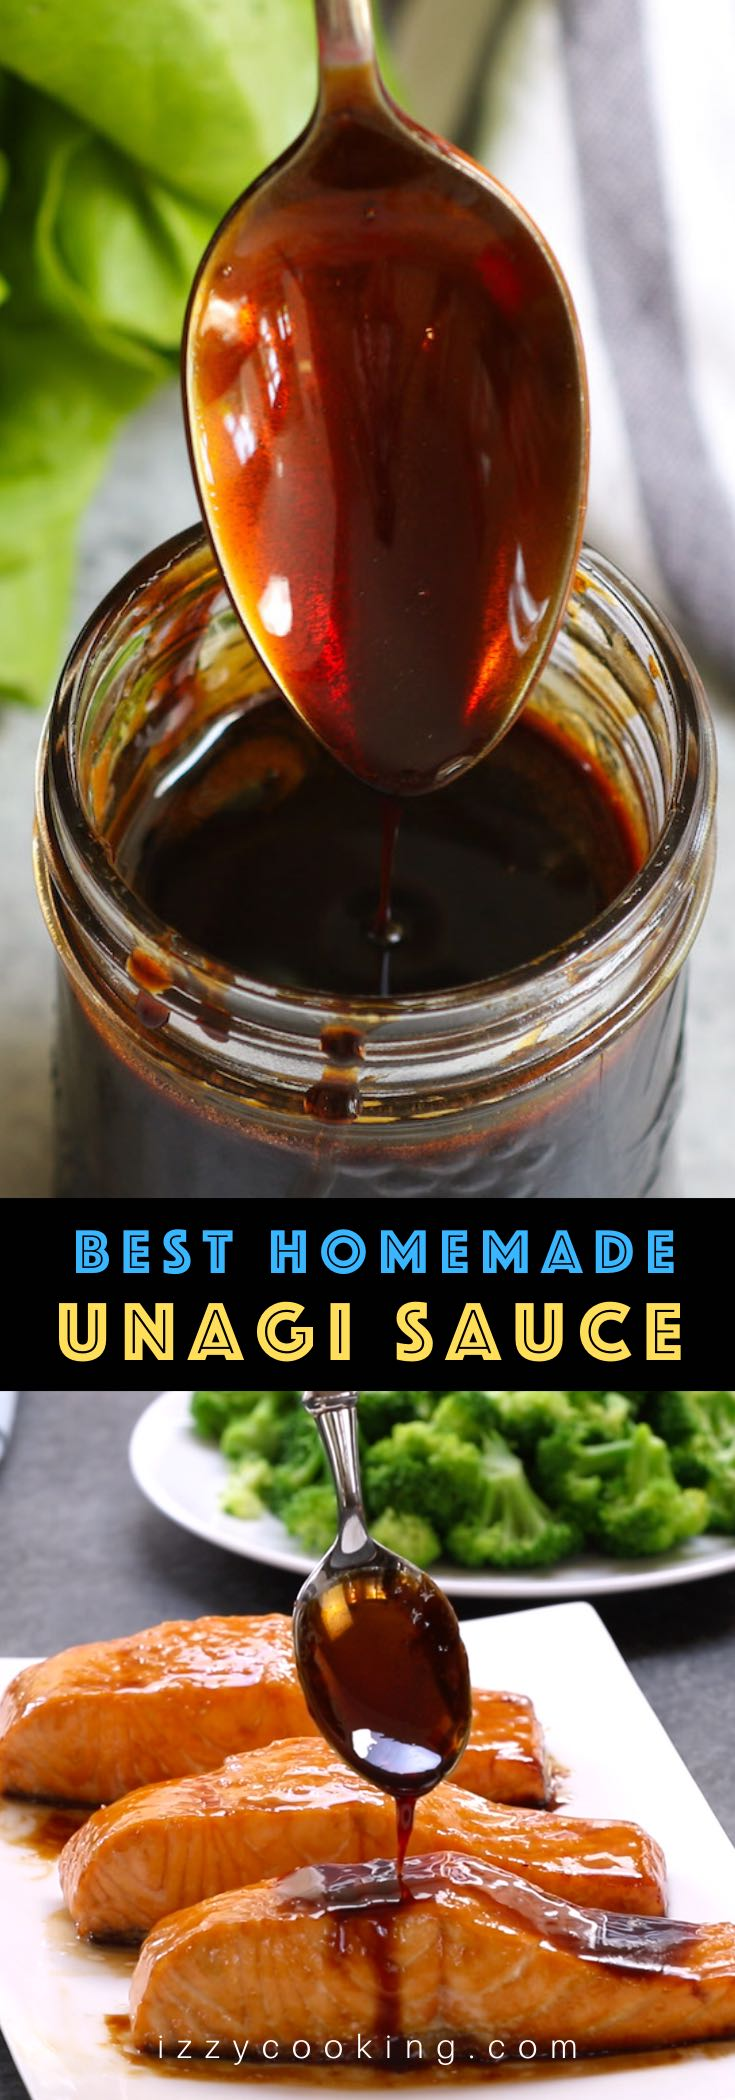 This homemade Unagi Sauce or Eel Sauce is sticky, sweet, savory, and flavorful! Popular in Japanese cuisine, it's traditionally used on grilled eel (unagi), barbeque dishes and sushi rolls. Unagi sauce is made by simmering 4 simple ingredients to a sugary, salty reduction that's perfect atop your favorite dish.